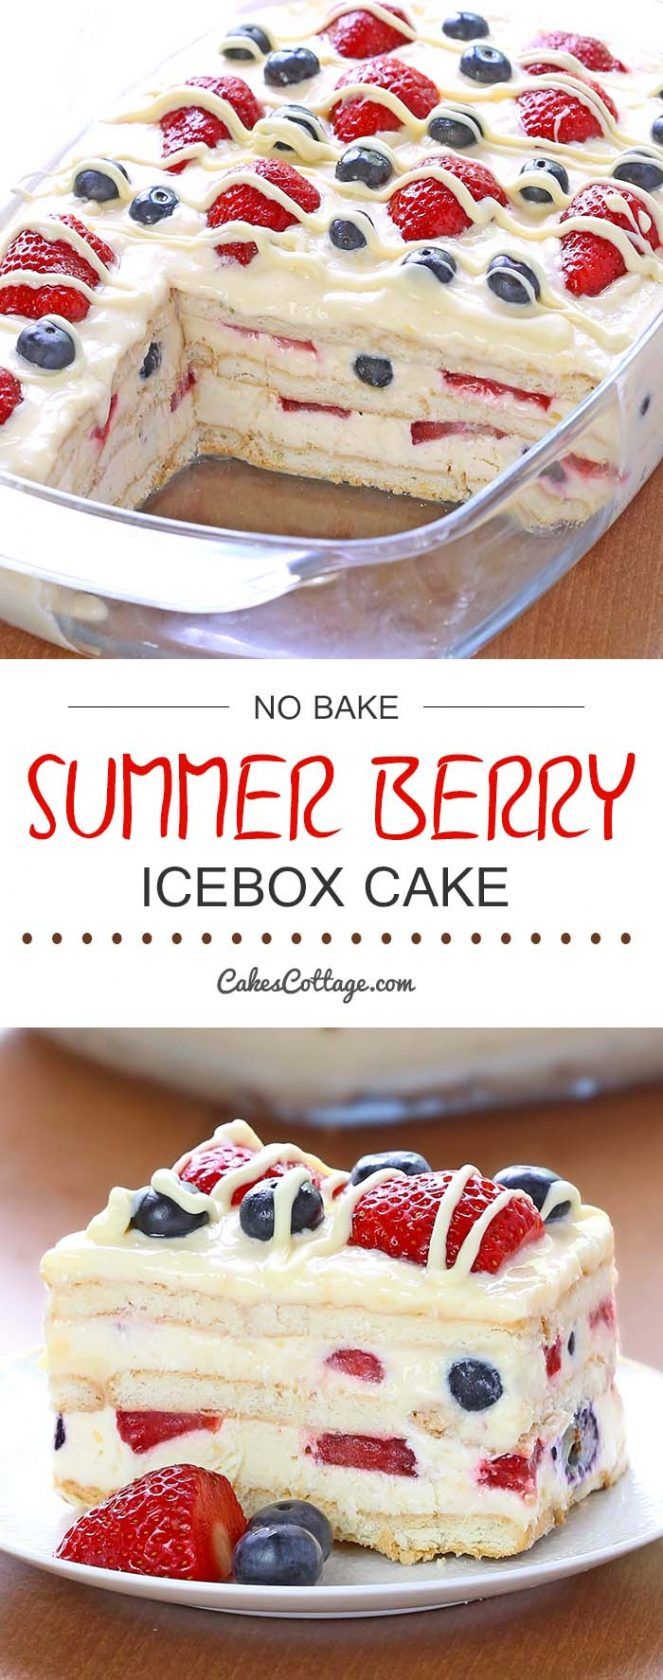 No-Bake Summer Berry Ice Box Cake...these are the BEST Cake Recipes!